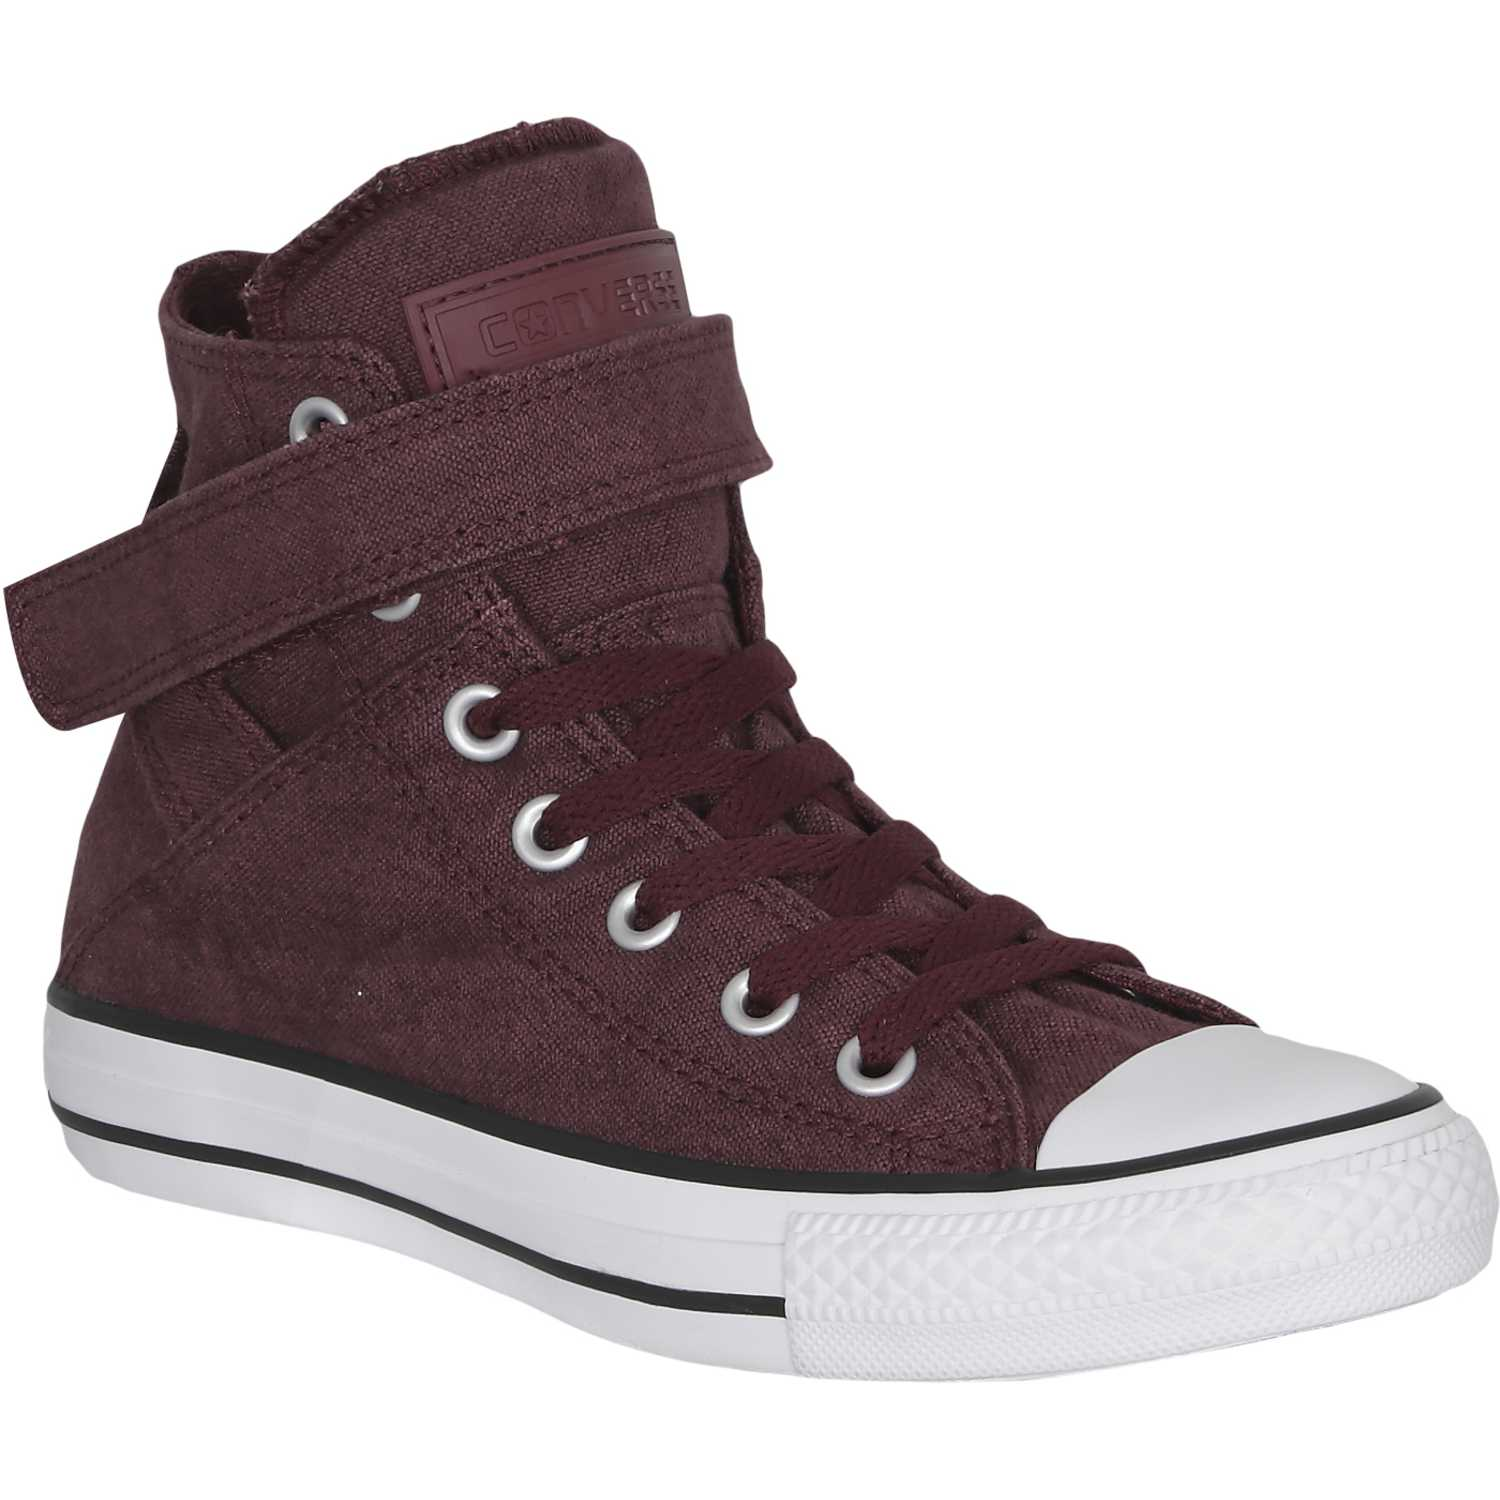 004bf7469 botines converse all star mujer